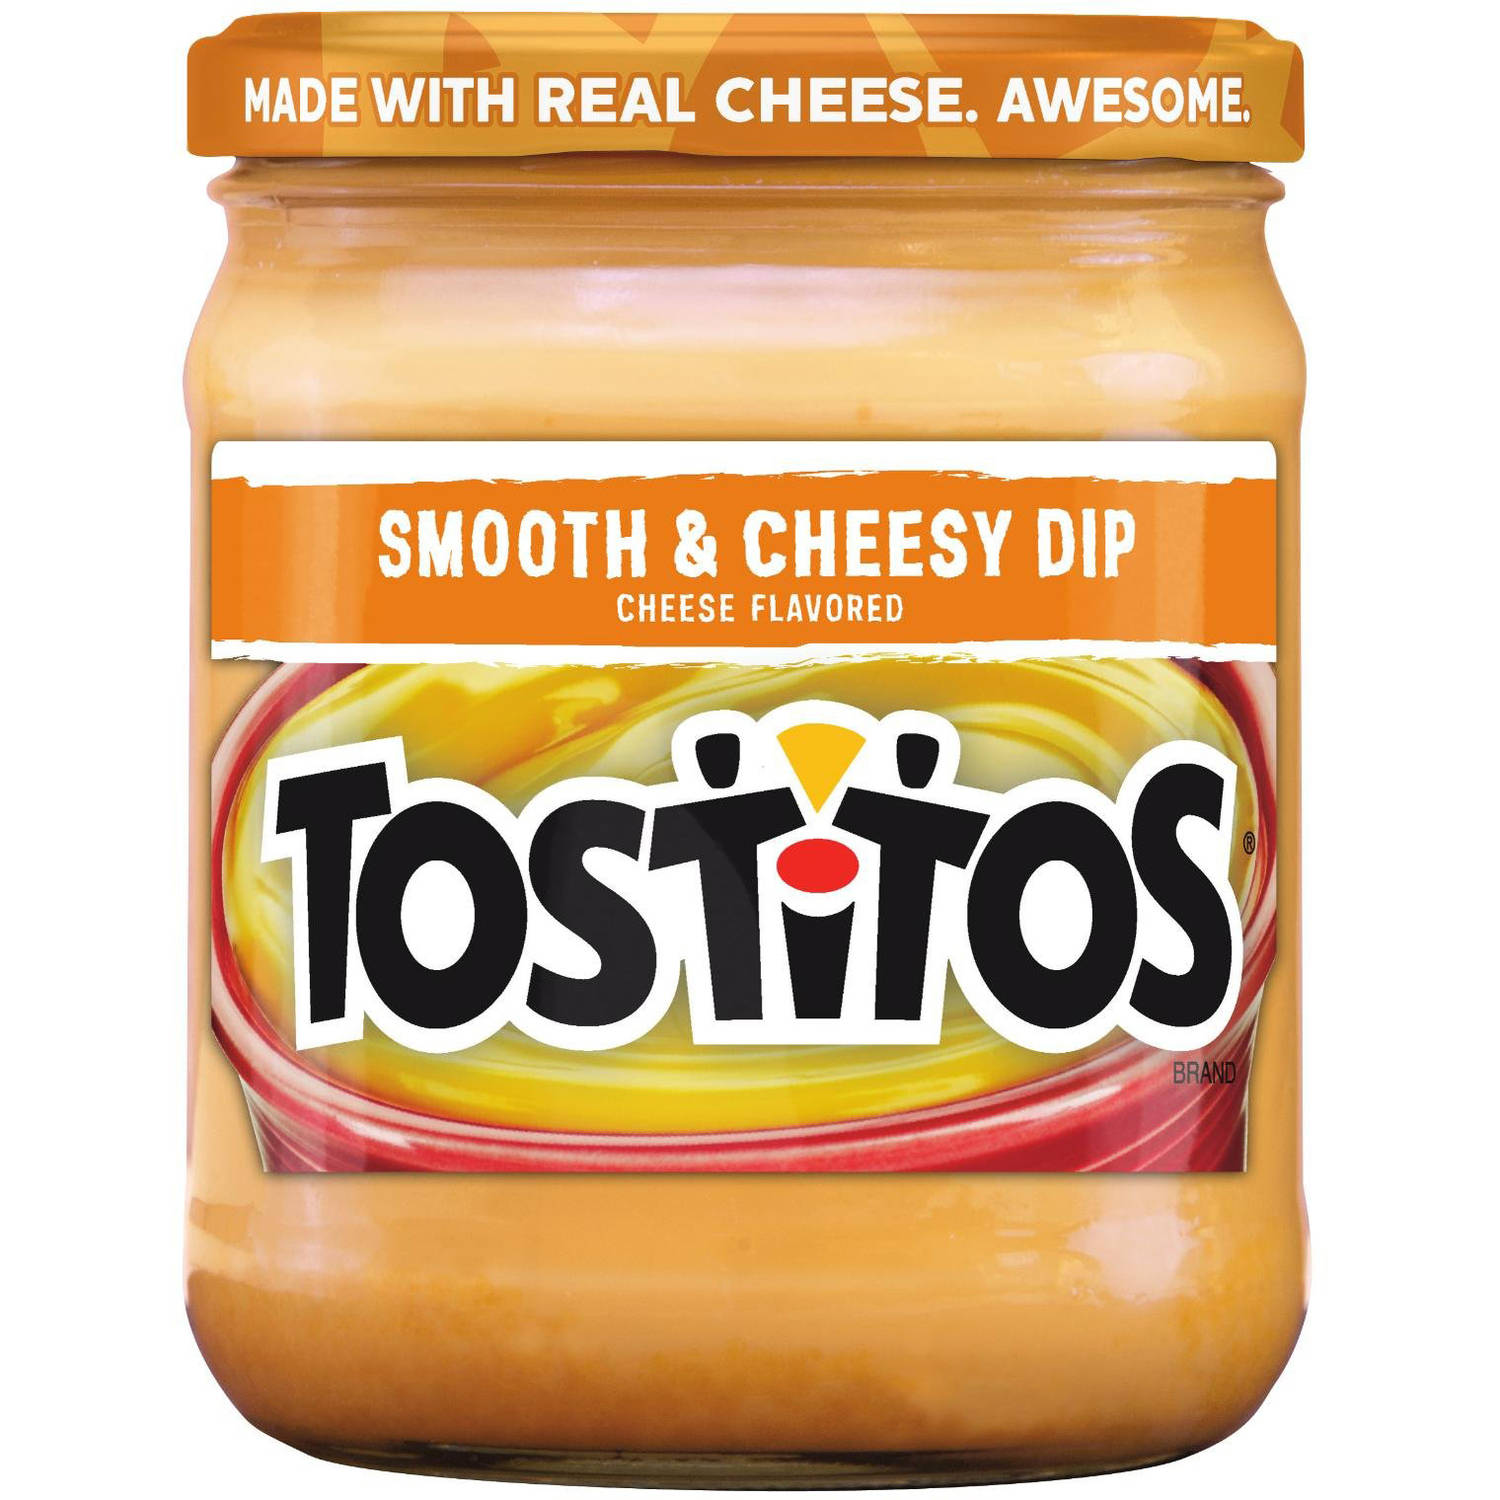 Tostitos Smooth & Cheesy Flavored Dip, 15 oz